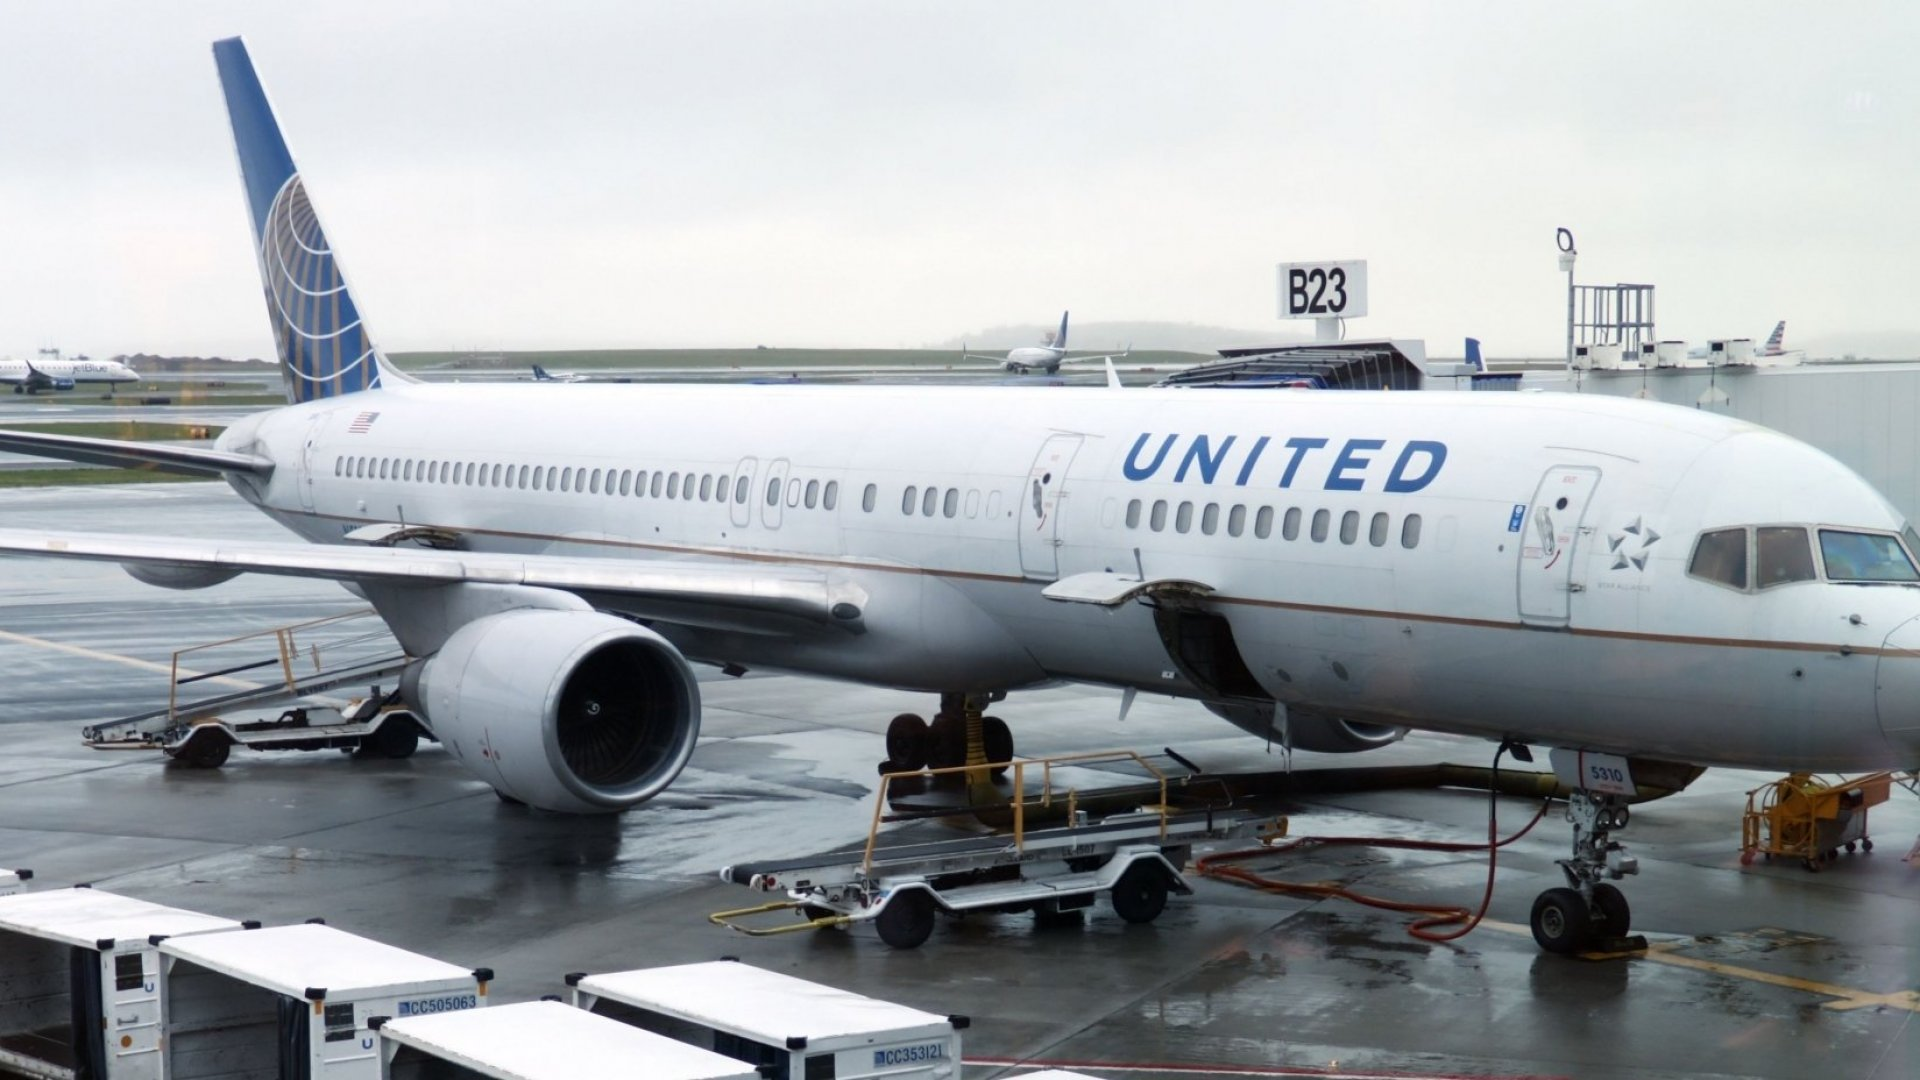 United Airlines President Says Only Frequent Flyers Are Happy On the Airline. The Reason Why Is Staggering